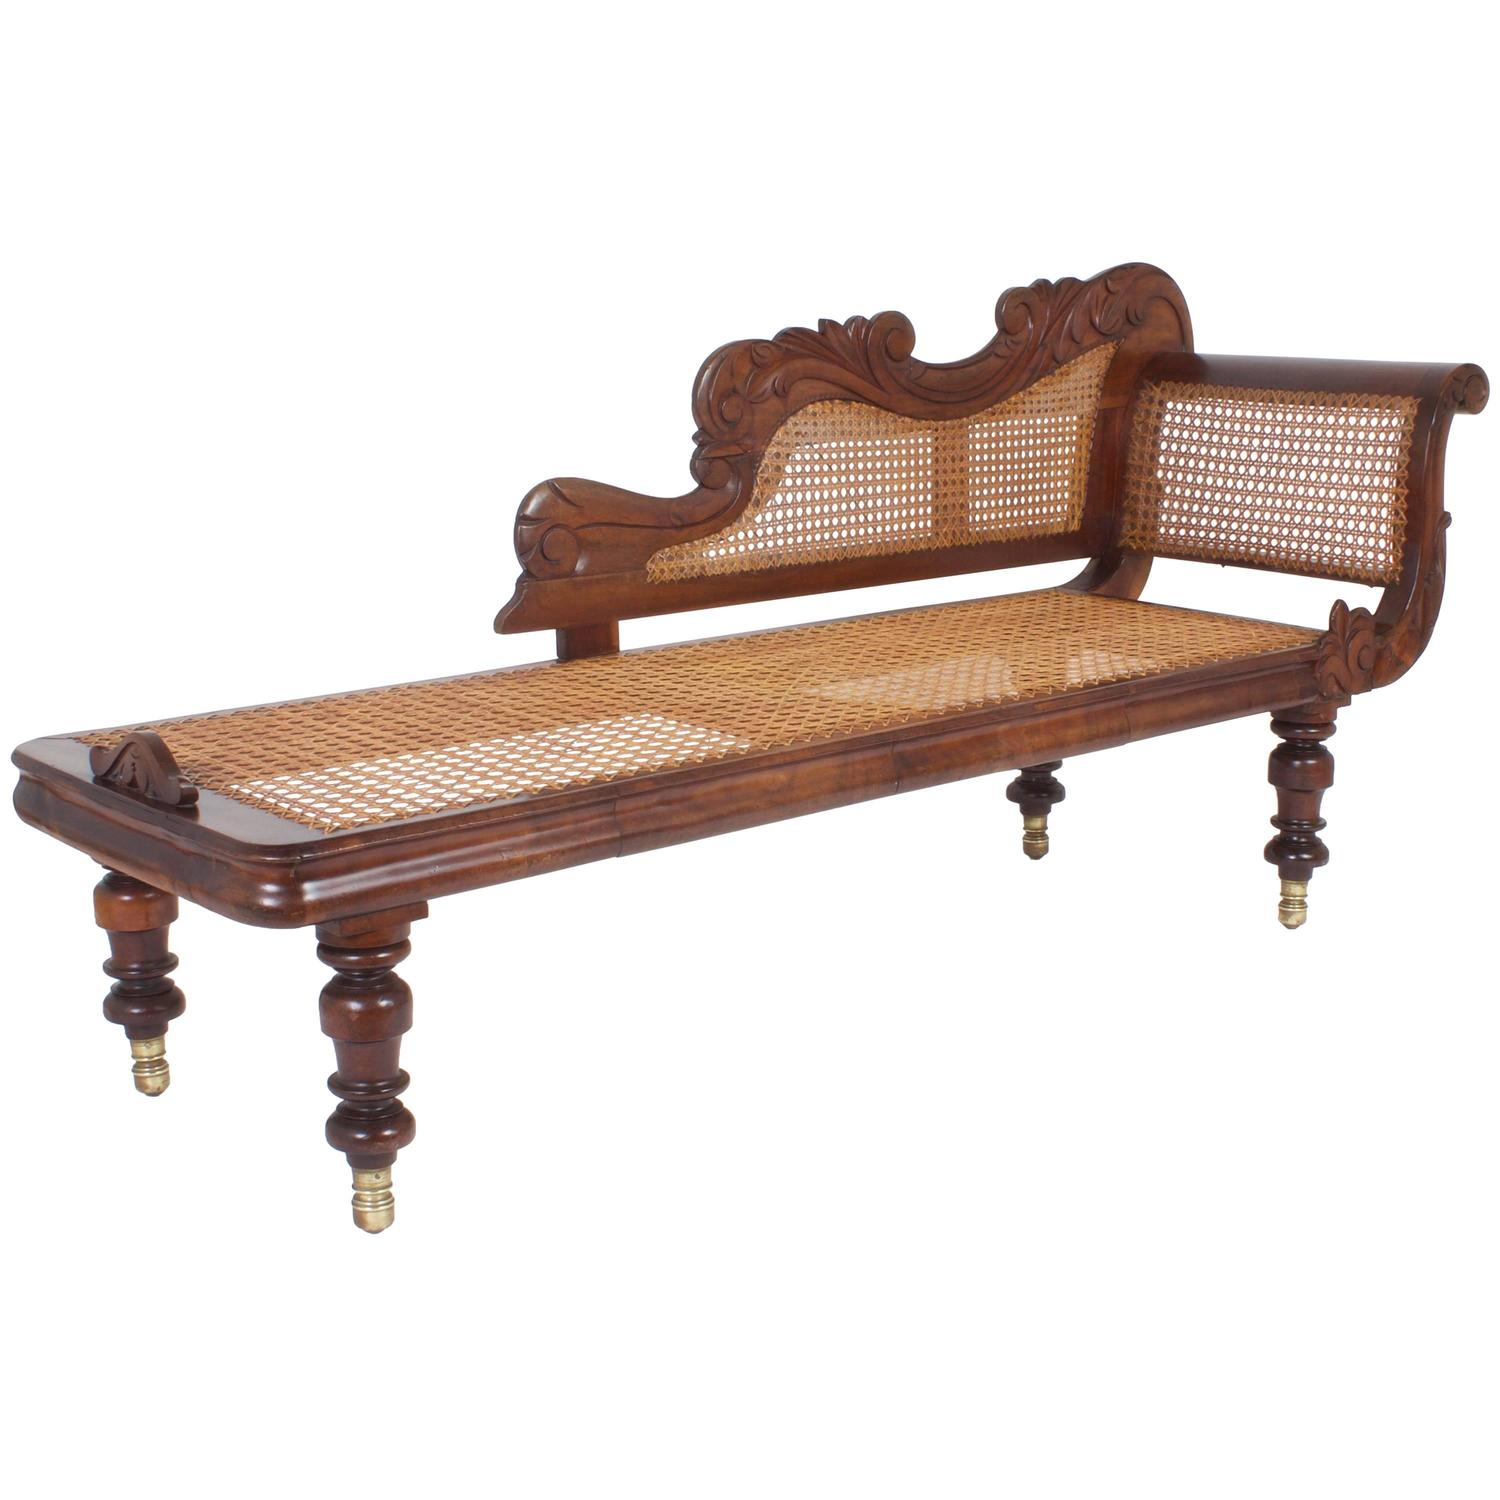 British colonial mahogany antique chaise longue at 1stdibs for Chaise longue antique